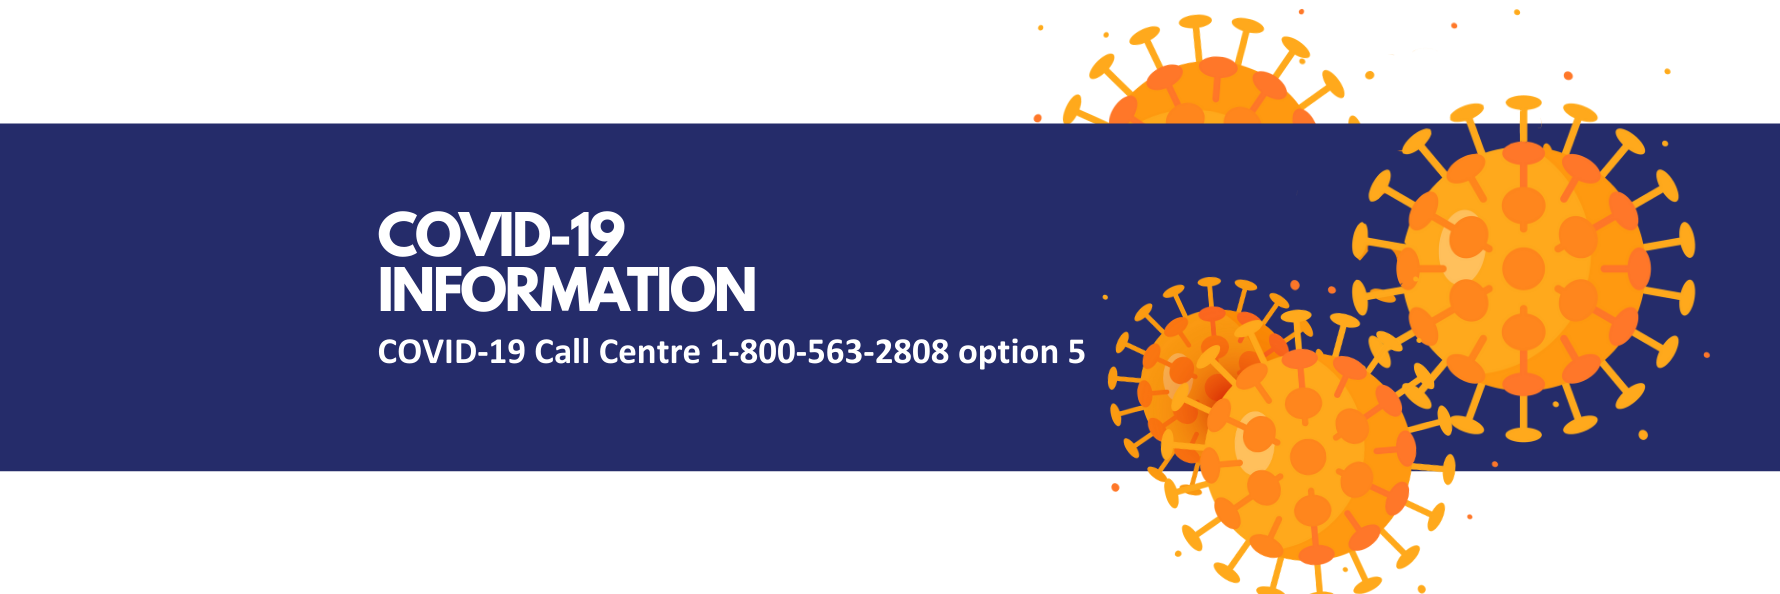 Call the Call Centre Monday to Friday from 8:45 a.m. to 4:30 p.m. at 1-800-563-2808 option 5